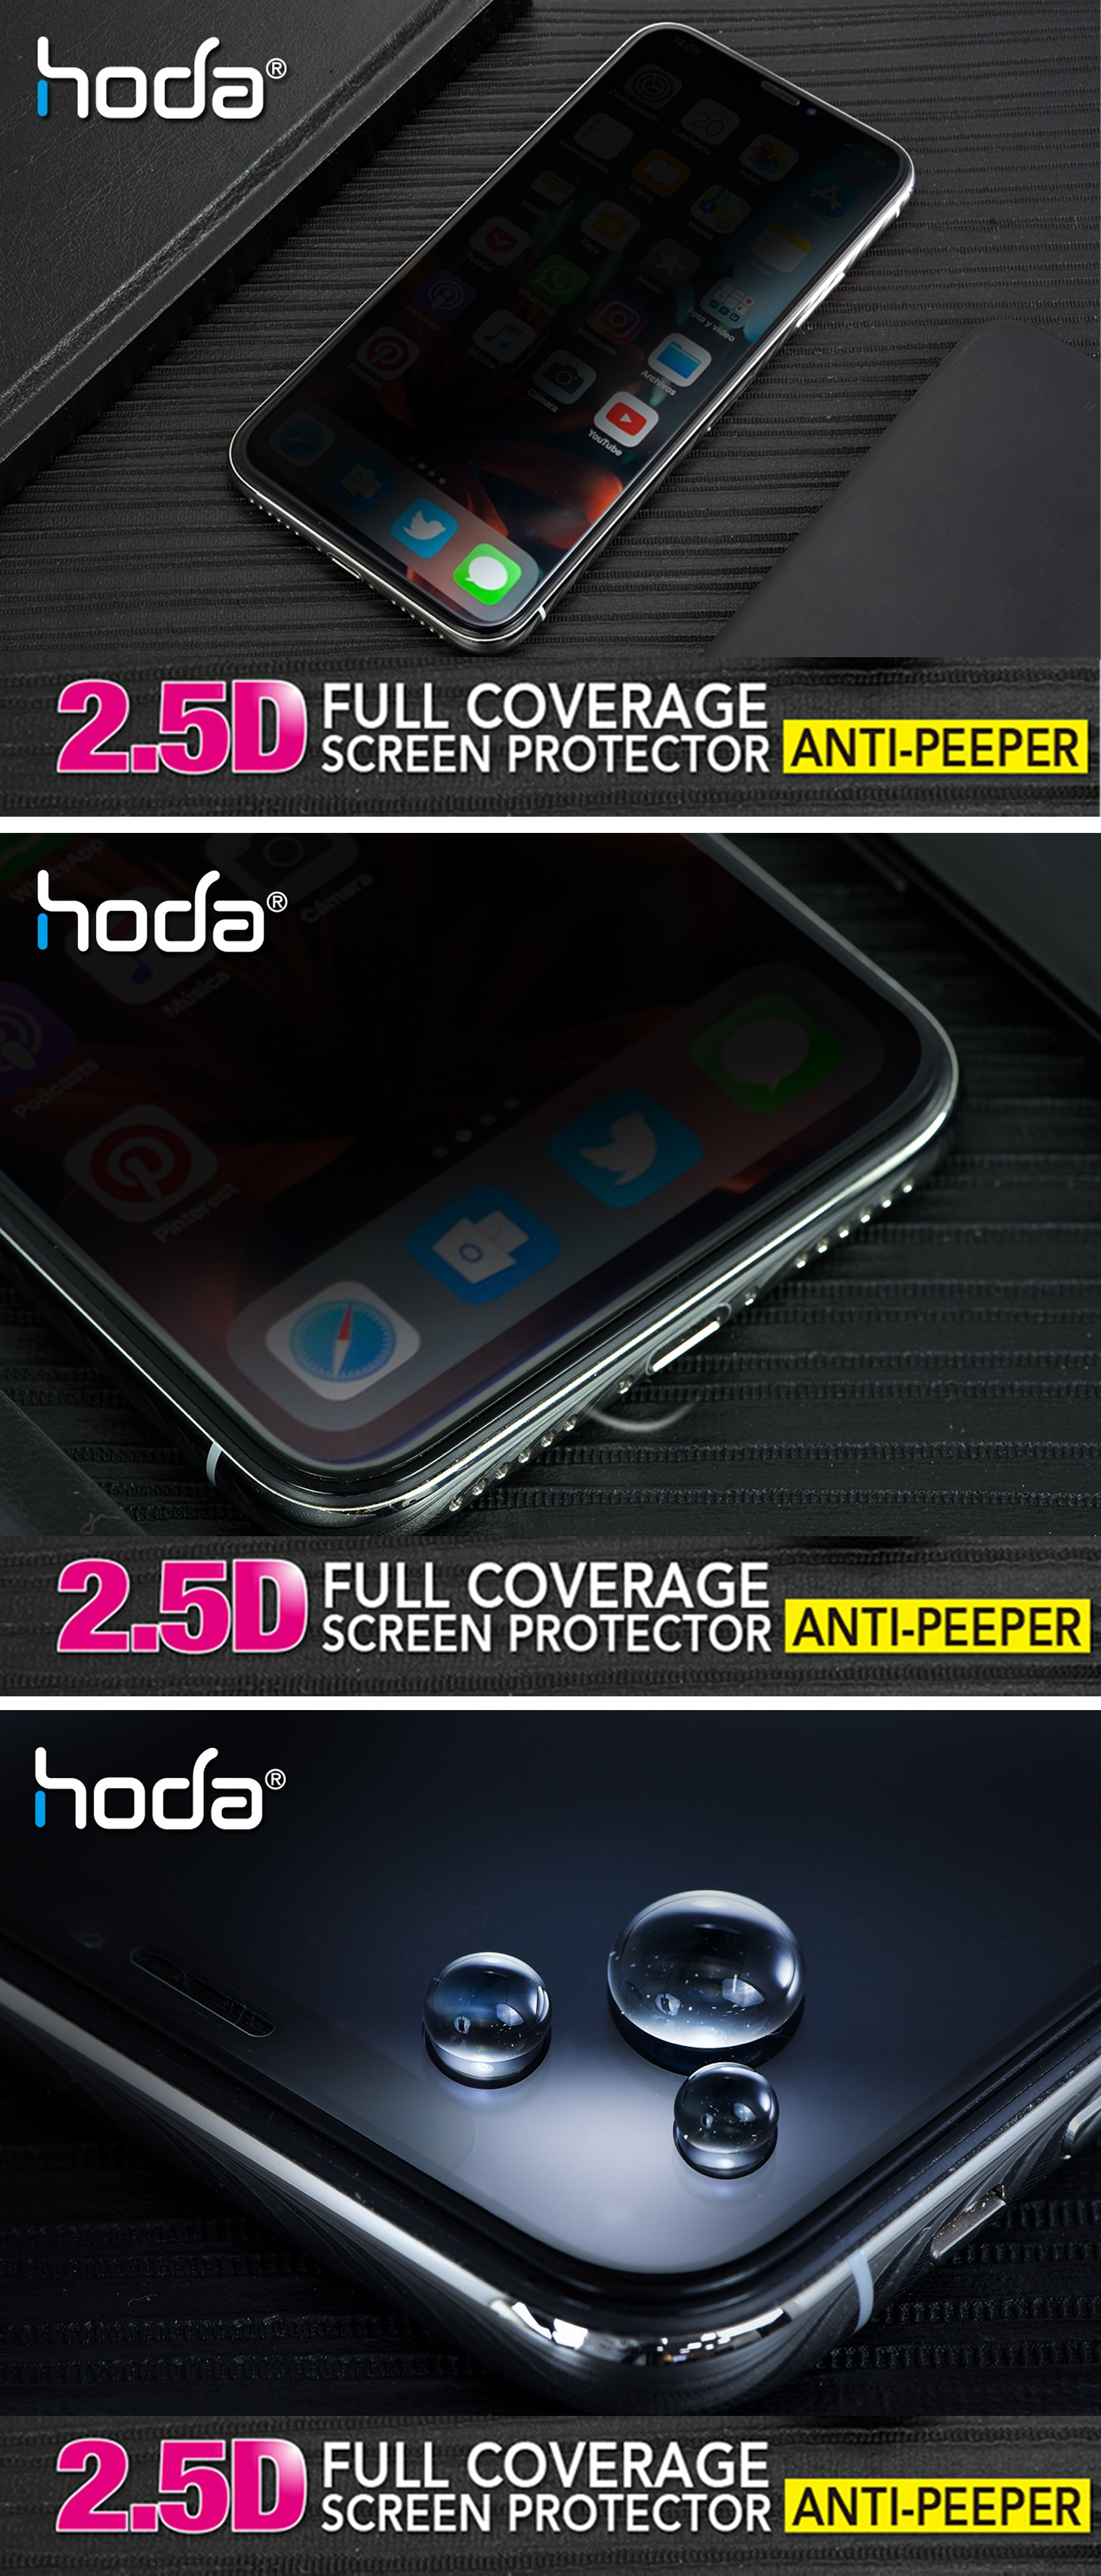 /hoda/4713381514658/1-des-fx-hoda-tempered-glass-iphone-11-pro-max-compatible-xs-max-2.5D-0.33mm-full-coverage-anti-peeper-screen-protector-black-4713381514658-malaysia-authorised-retailer